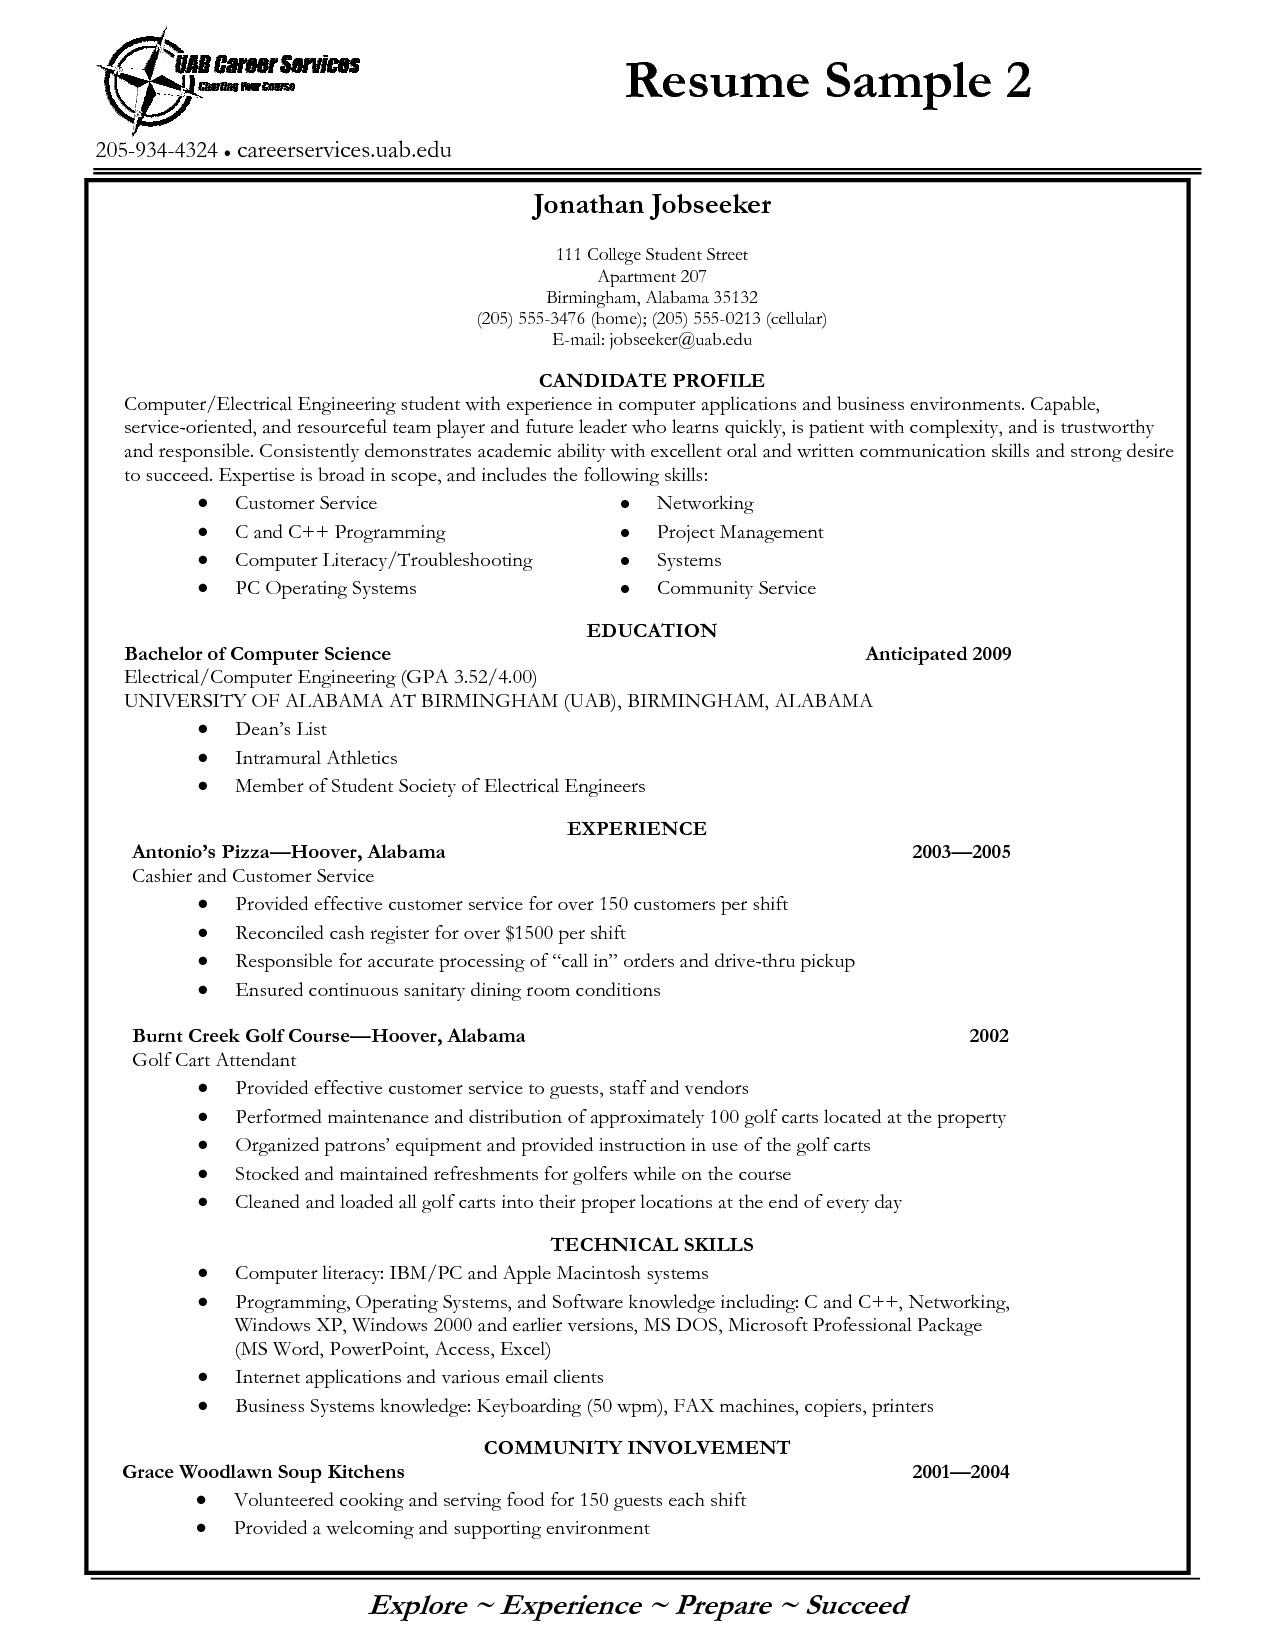 College Student Resume Examples Little Experience Tags College Graduate Resume No Experience College Graduate Resume